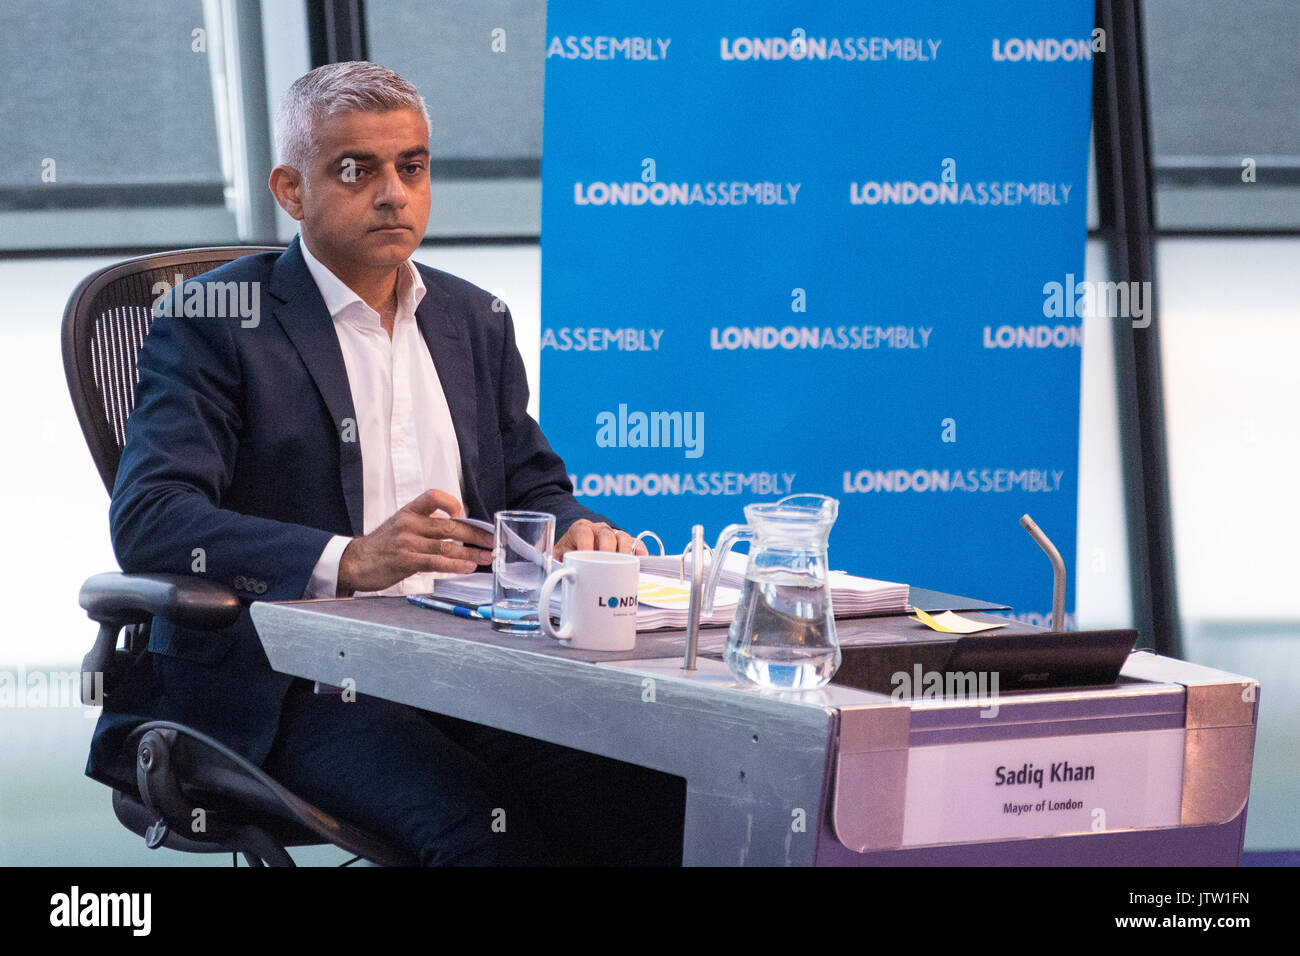 London, UK. 10th August, 2017. Mayor of London Sadiq Khan responds to questions from London Assembly Members during Mayor's Question Time at City Hall. Among topics discussed were: acid attacks, social housing, expenditure on fire, 4G coverage on underground trains and police services and noise from overnight underground trains. Credit: Mark Kerrison/Alamy Live News - Stock Image